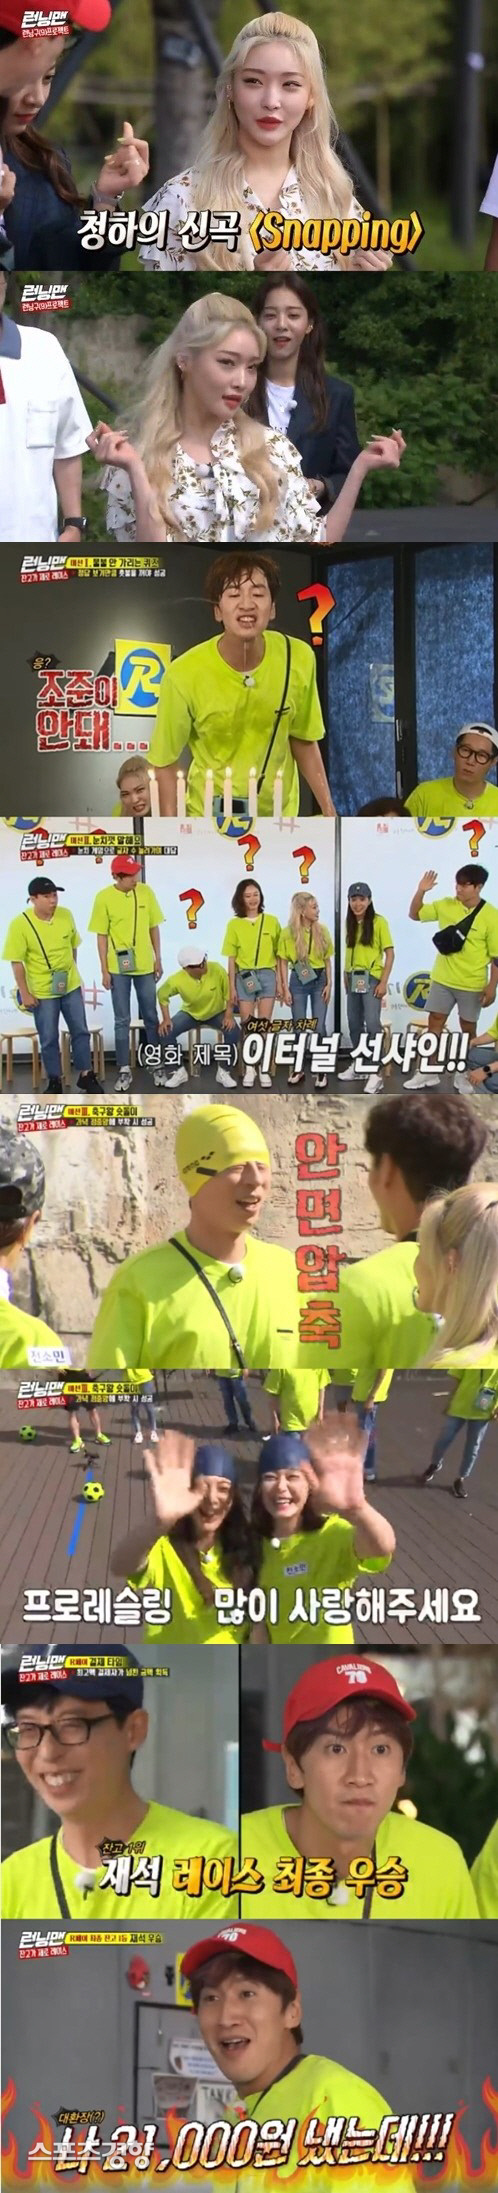 <p>SBS art program <Running Man>the firm '2049 target audience' while the time zone 1 position kept.</p><p>Viewership survey Agency Nielsen Korea, according to a 6 October 23 broadcast of 'Running Man'is Per minute, with a maximum application rate up to 8% soared, and the main advertising officials of the important indicators of '2049 target audience'is 4. 1%(NCR furniture viewership Part 2 standard)was recorded. Average viewership is part 1 of 5. 1%, 2 parts of 7%(NCR furniture viewership standards)were.</p><p>This day in the broadcast 'balance is zero race'furnished was. 'Girlfriend' singer young and actor Seol In-ah as a guest were together. This time in the race, the members of each of the 3 million original, which contains the mission phone receives a payment. Health food restaurants and around food Payment you want as long as 'R page'to a non-public Payment and Payment after the final amount if you run out every round in the mission pasture, bracelets with one person the best to serve people who lack the amount split Payment becomes a must. However, the final amount of overflows if the top amount to embellish a person difference earn all of it.</p><p>This member is from the start a keen eye location operation waged, especially in the last round of the 'humiliation hat'up to that penalty was for. Unexpected big laugh in the middle, the Payment order is that each of the members of the extreme noticed the fight as a laugh, I found myself, and this scene is Per minute, with a maximum application rate of 8 percent, a record, and 'best 1 minute'is accounted for.</p>